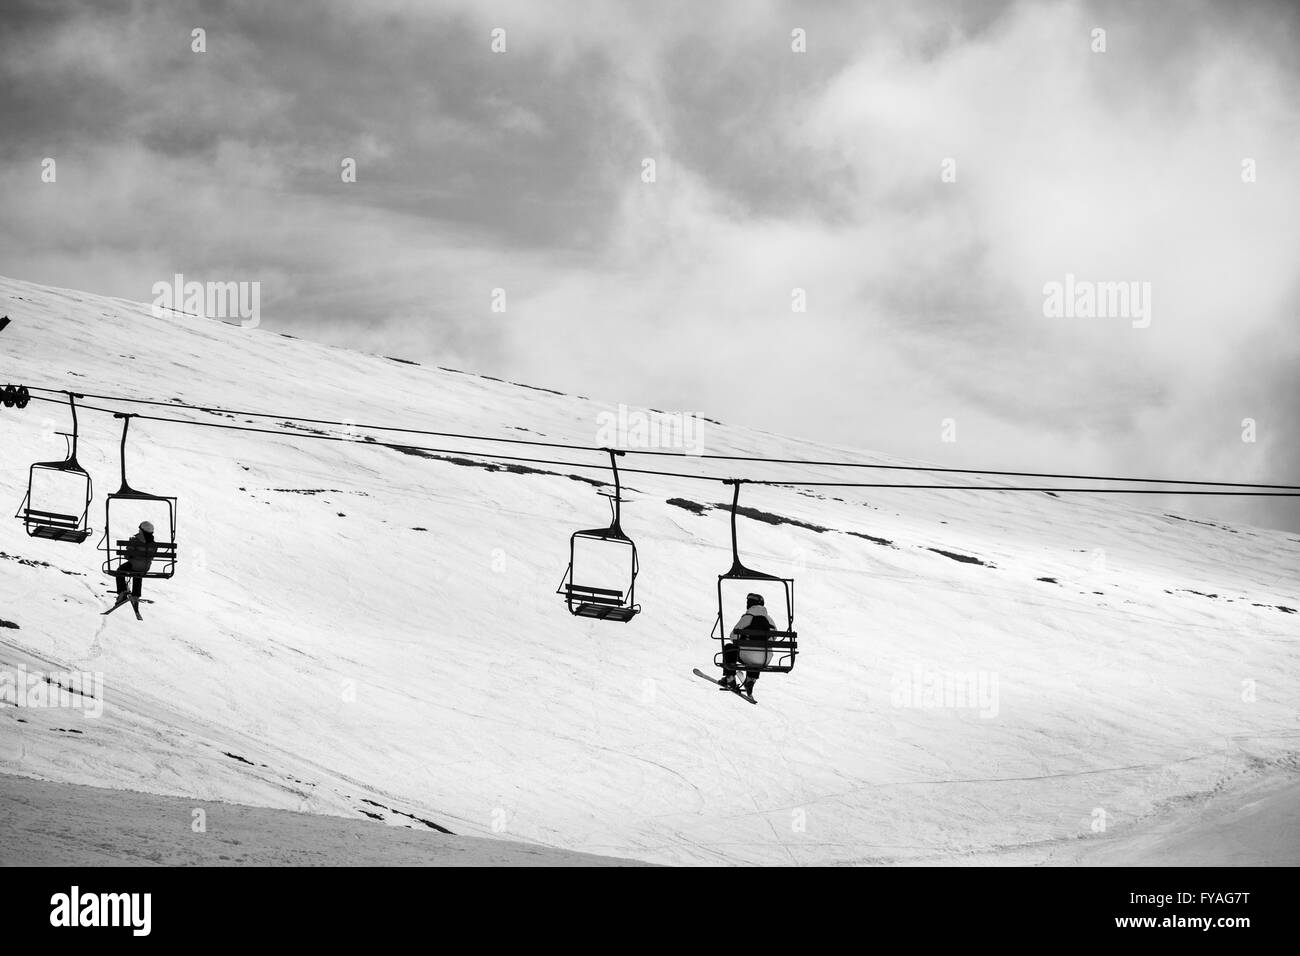 people highing up the chair lift in the top of the ski piste - Stock Image